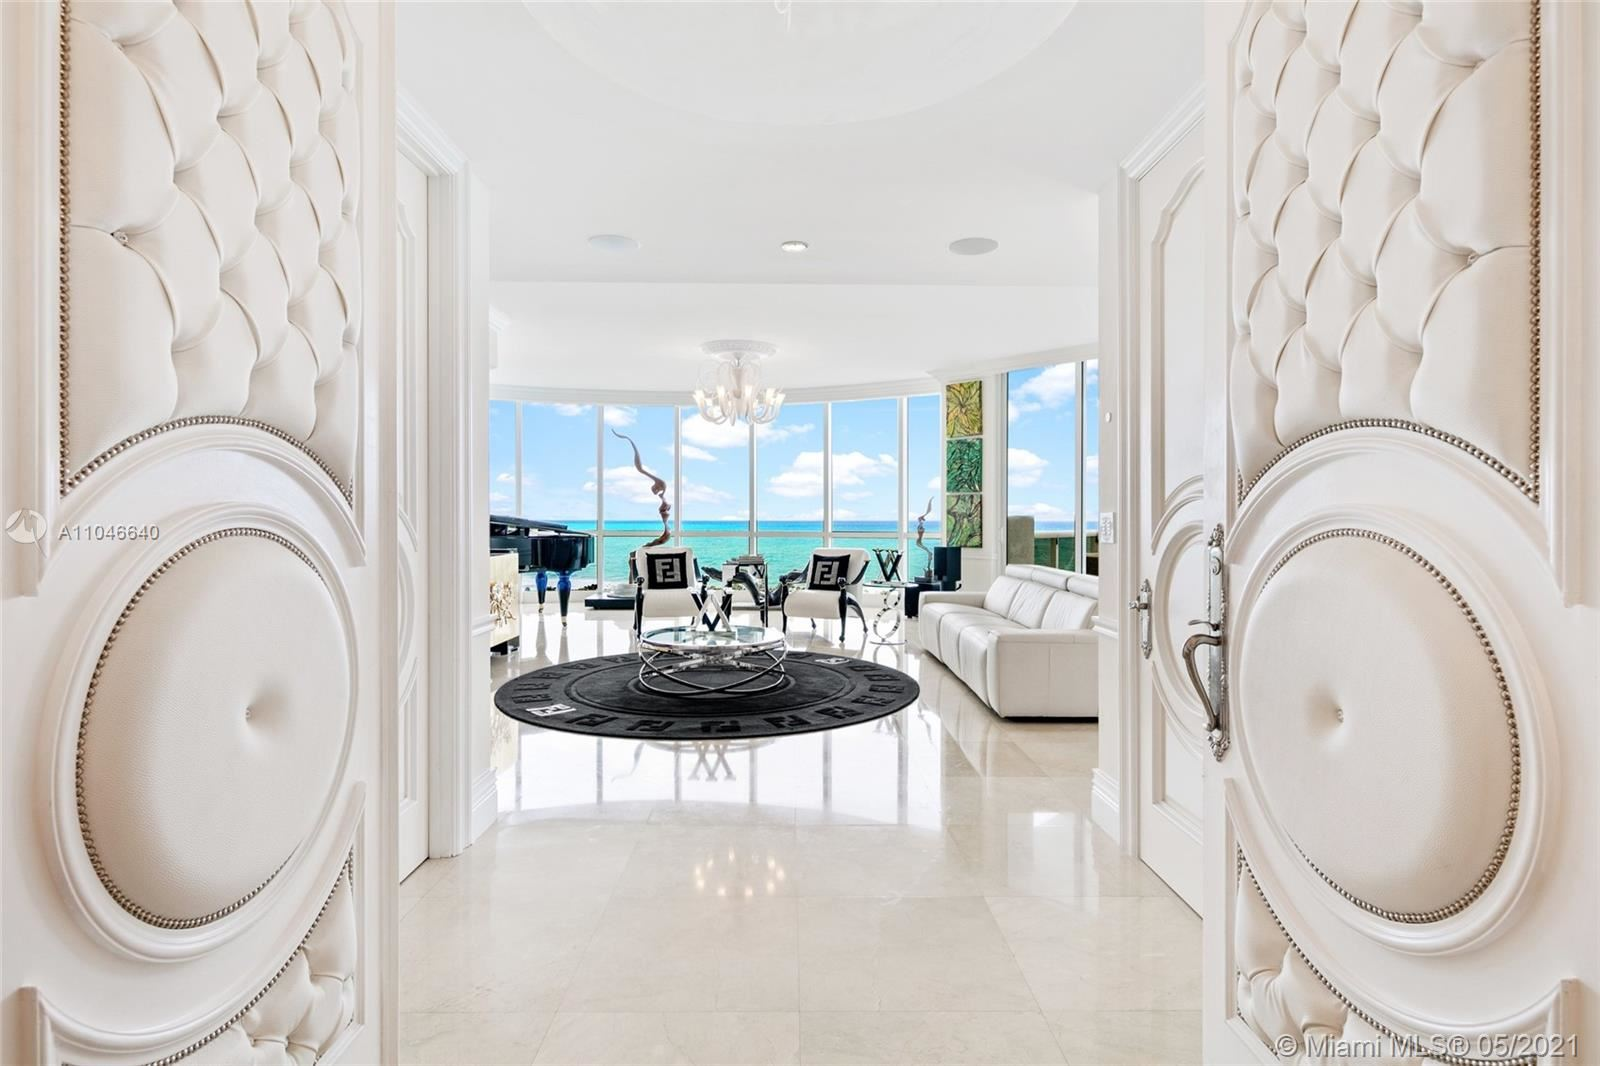 18101 Collins Ave #1109, Sunny Isles, FL 33160 - #: A11046640